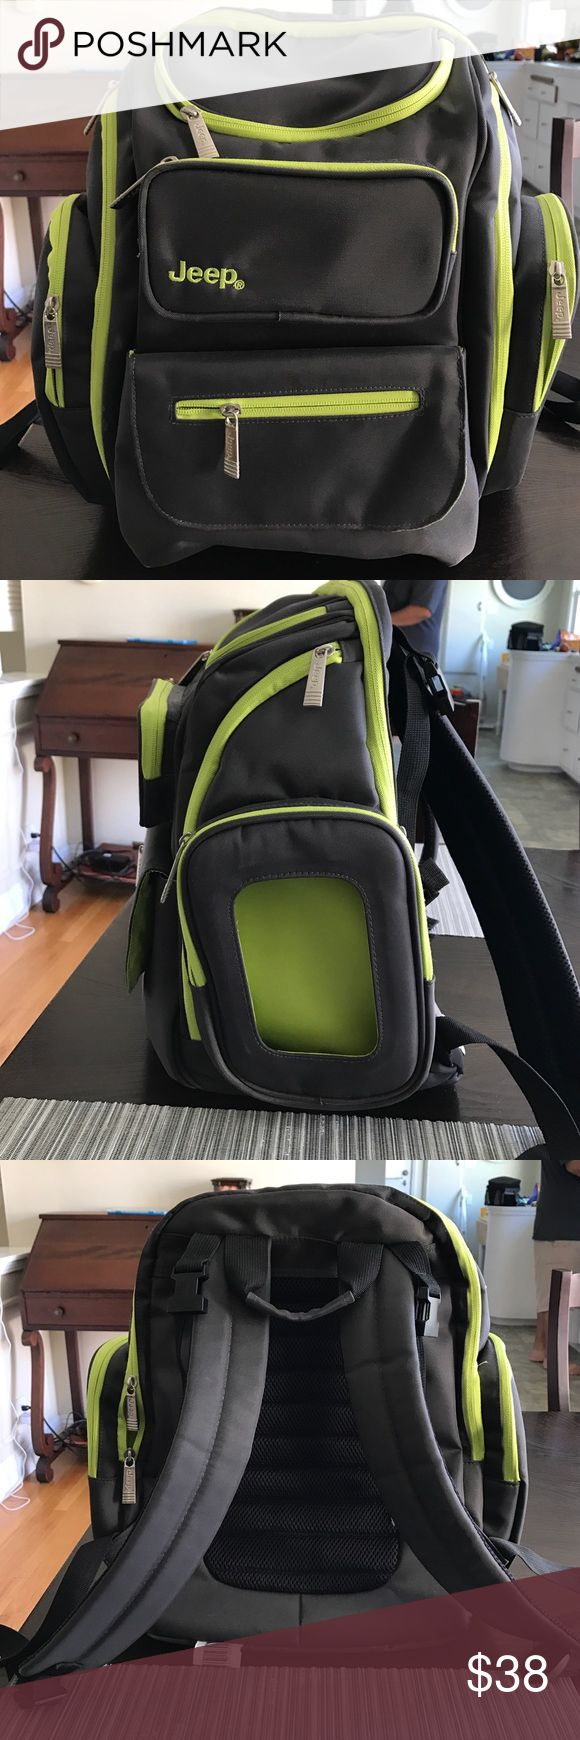 Jeep Diaper Bag for Dad Excellent condition, only used once. Great backpack to use for baby. Organizes baby items in many compartments. Colorful & clean. Jeep Bags Baby Bags